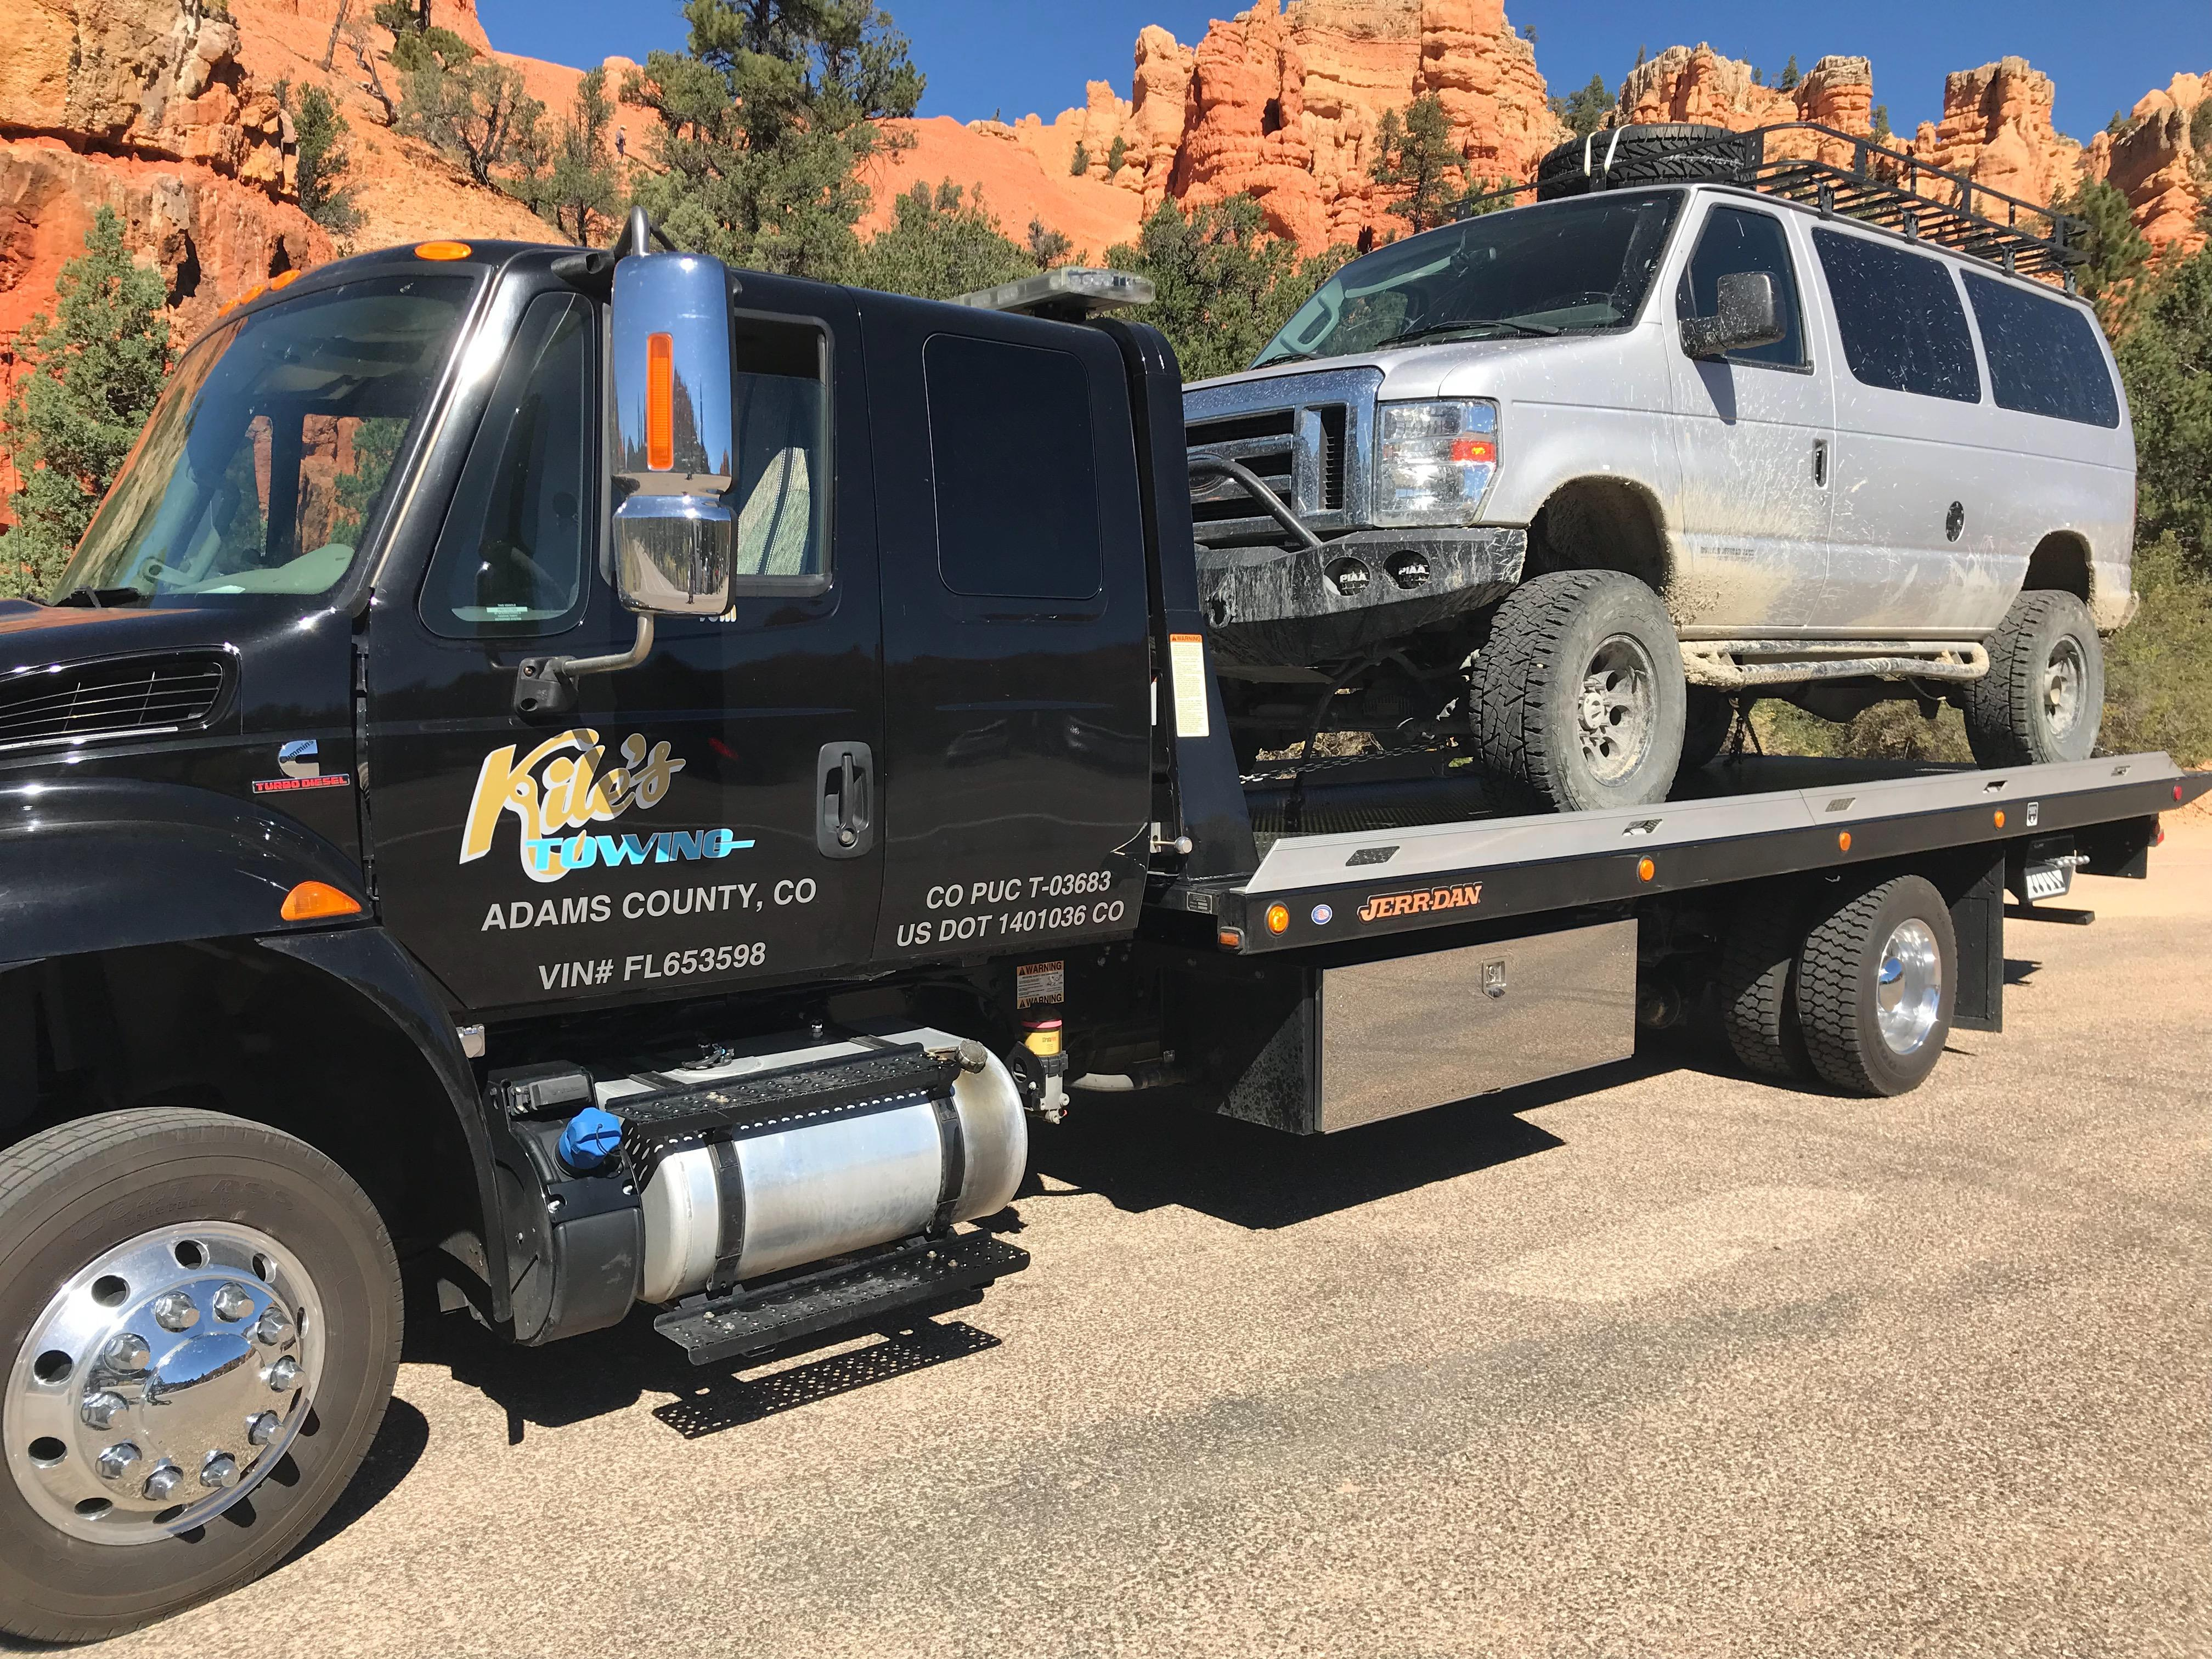 Kile's Towing image 22